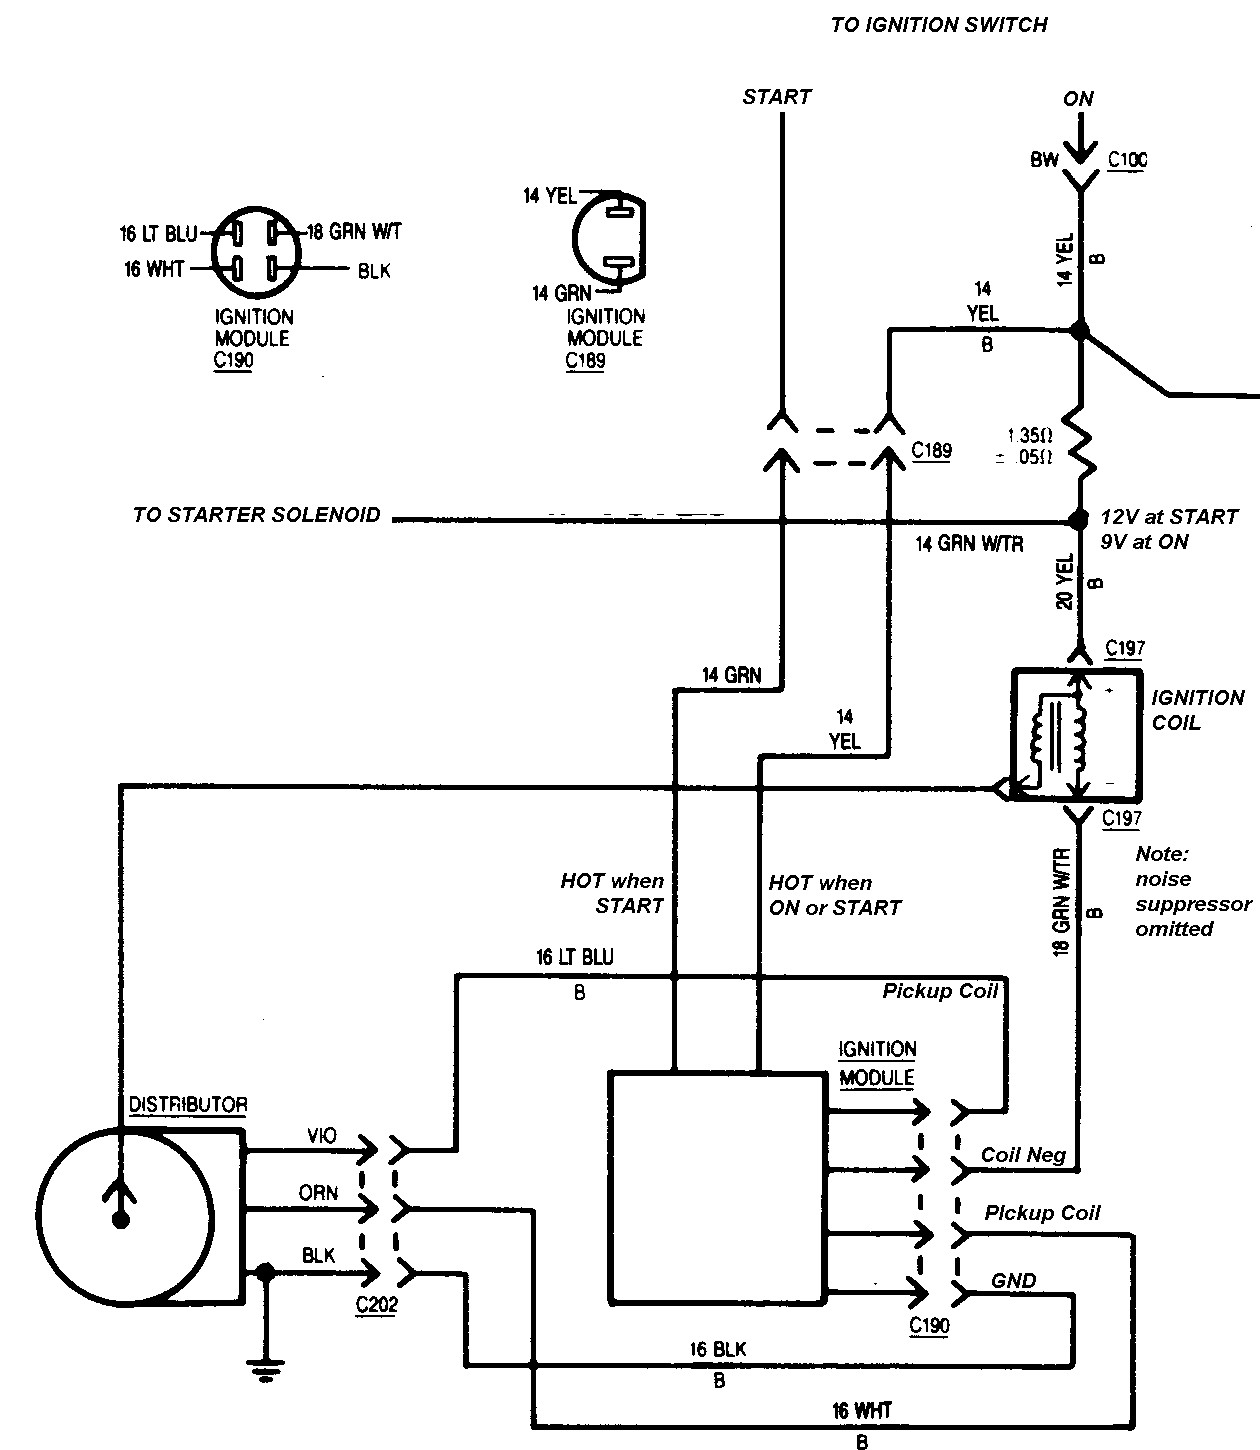 [DIAGRAM_5LK]  1990 Ford Radio Wiring Harness Diagram - F7 Wiring Diagram • | Ford Wiring Diagram For Radio |  | mark.up.agriturismovaldipiatta.it